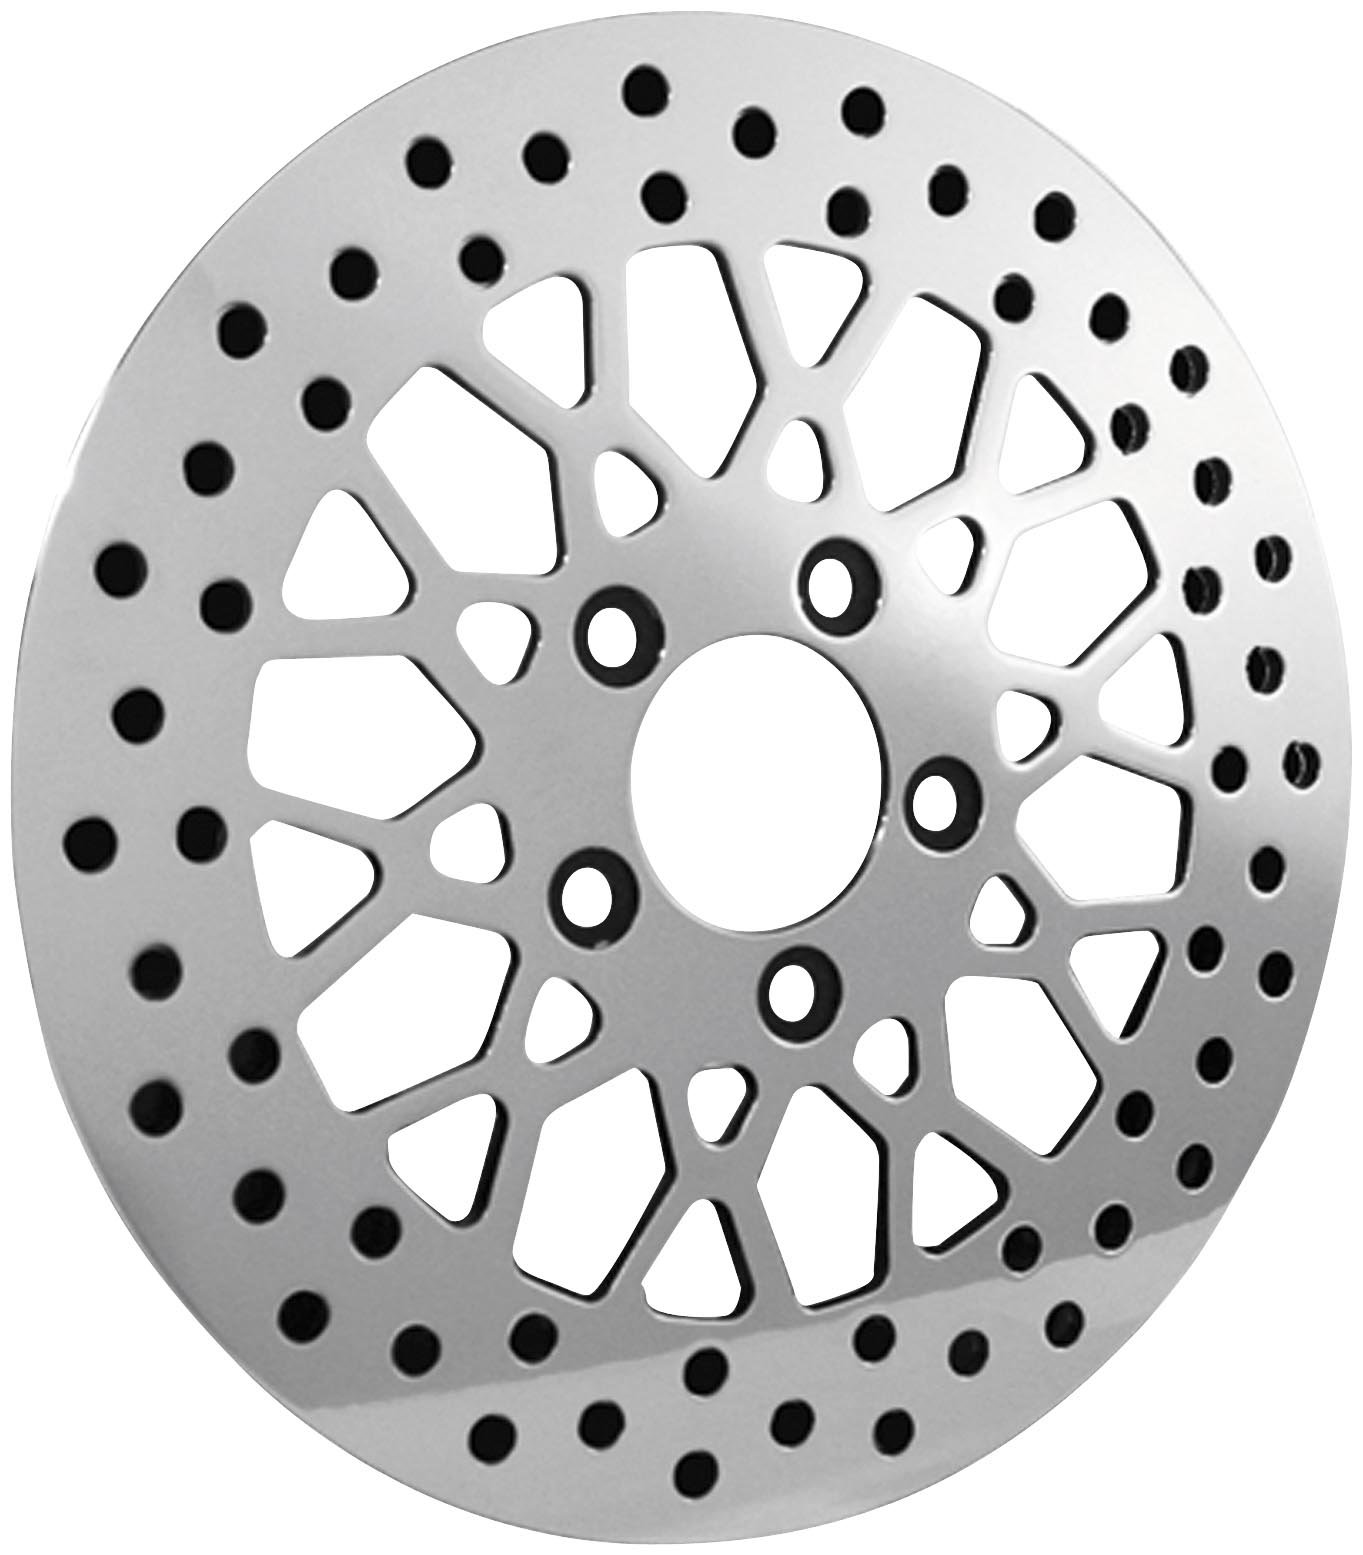 Bikers Choice 11.5 in. Polished Mesh Style Rear Brake Rotor for Harley Davidson - One Size